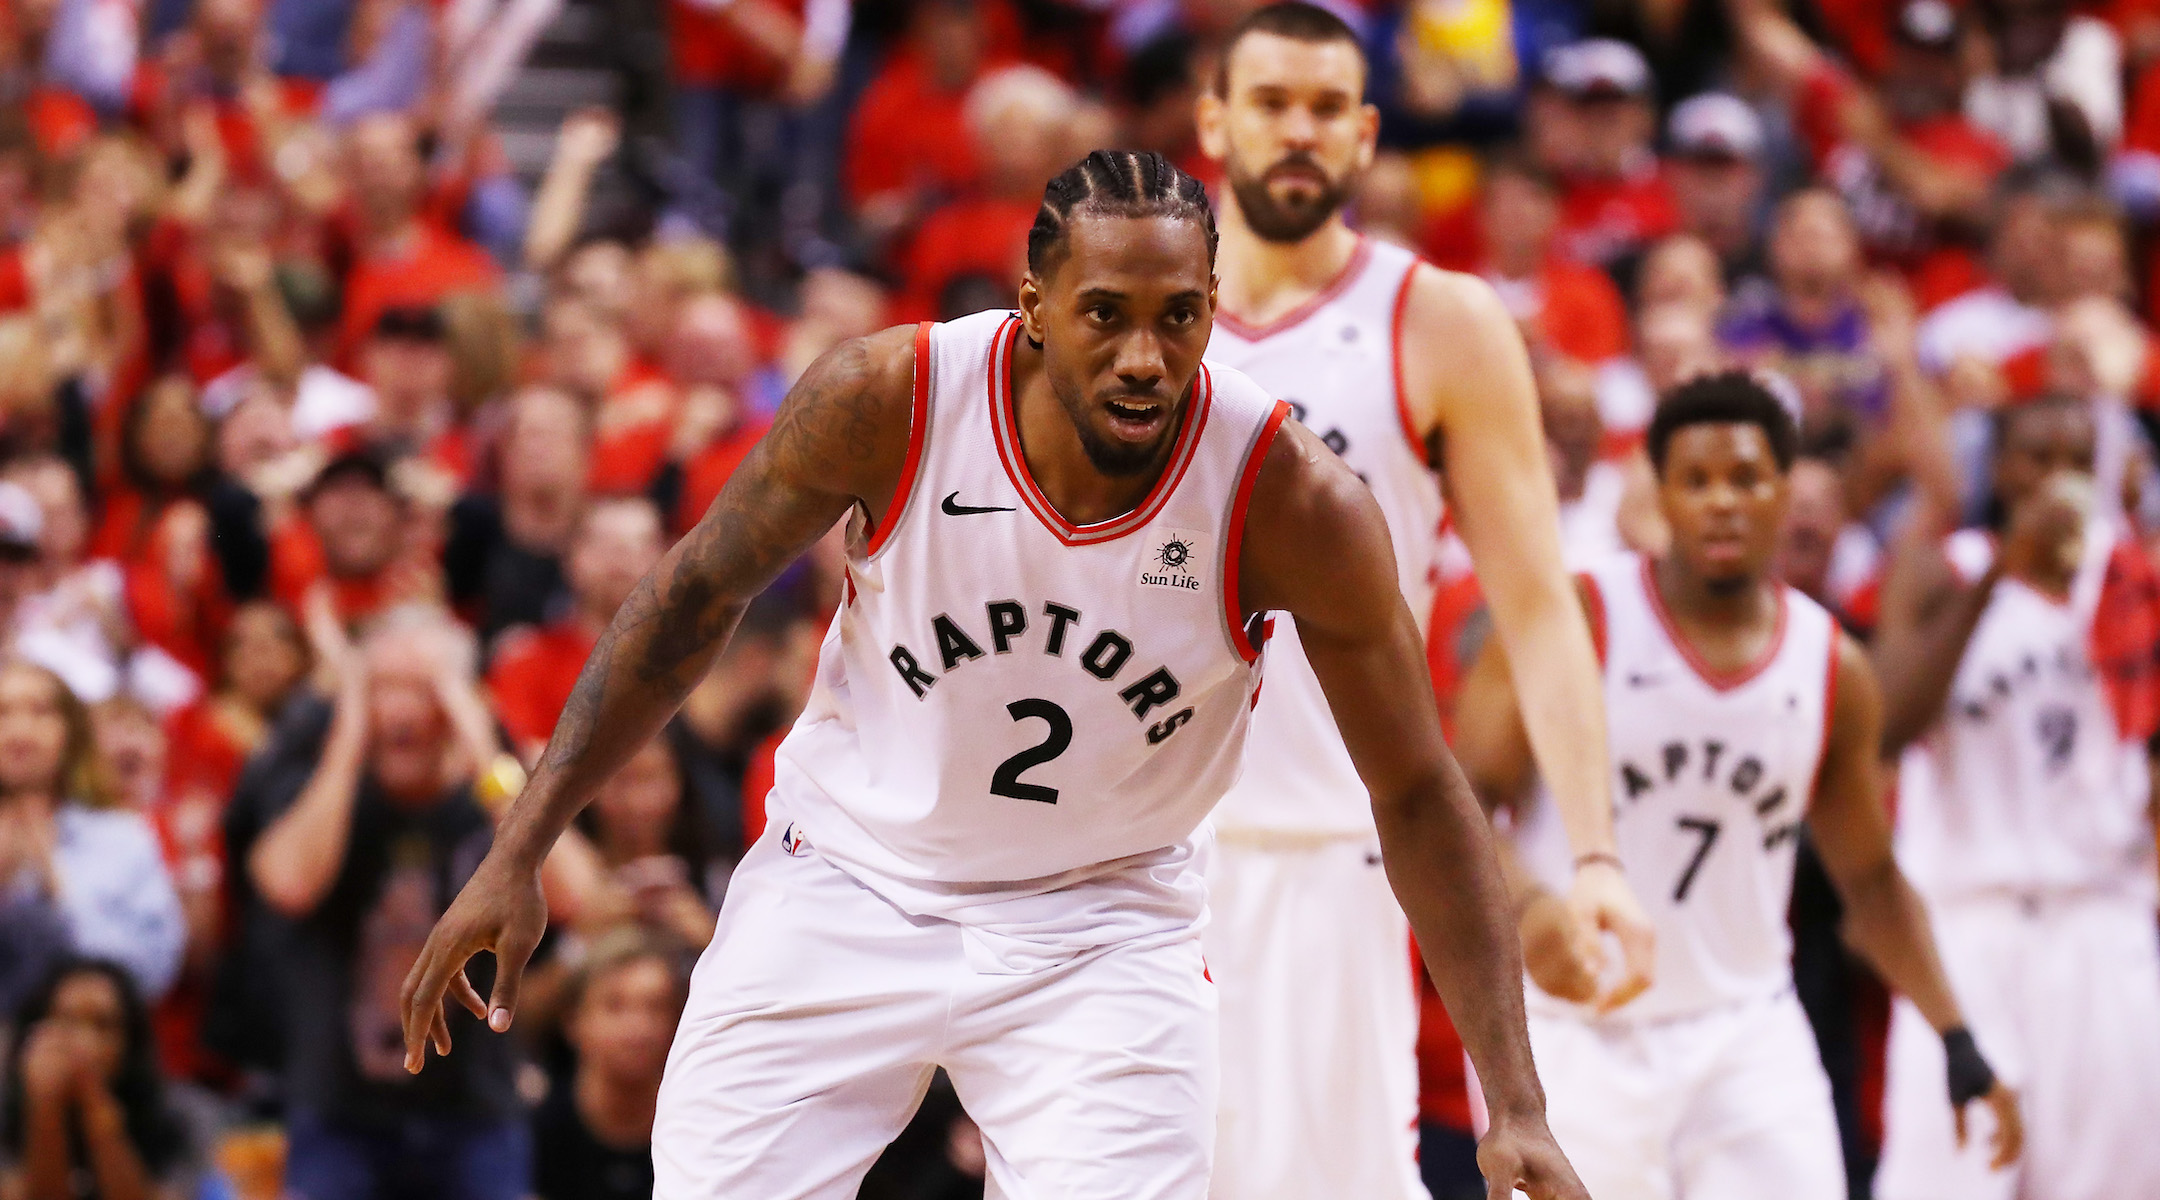 TORONTO, ONTARIO - JUNE 10: Kawhi Leonard #2 of the Toronto Raptors reacts against the Golden State Warriors in the second half during Game Five of the 2019 NBA Finals at Scotiabank Arena on June 10, 2019 in Toronto, Canada. NOTE TO USER: User expressly acknowledges and agrees that, by downloading and or using this photograph, User is consenting to the terms and conditions of the Getty Images License Agreement. (Photo by Gregory Shamus/Getty Images)